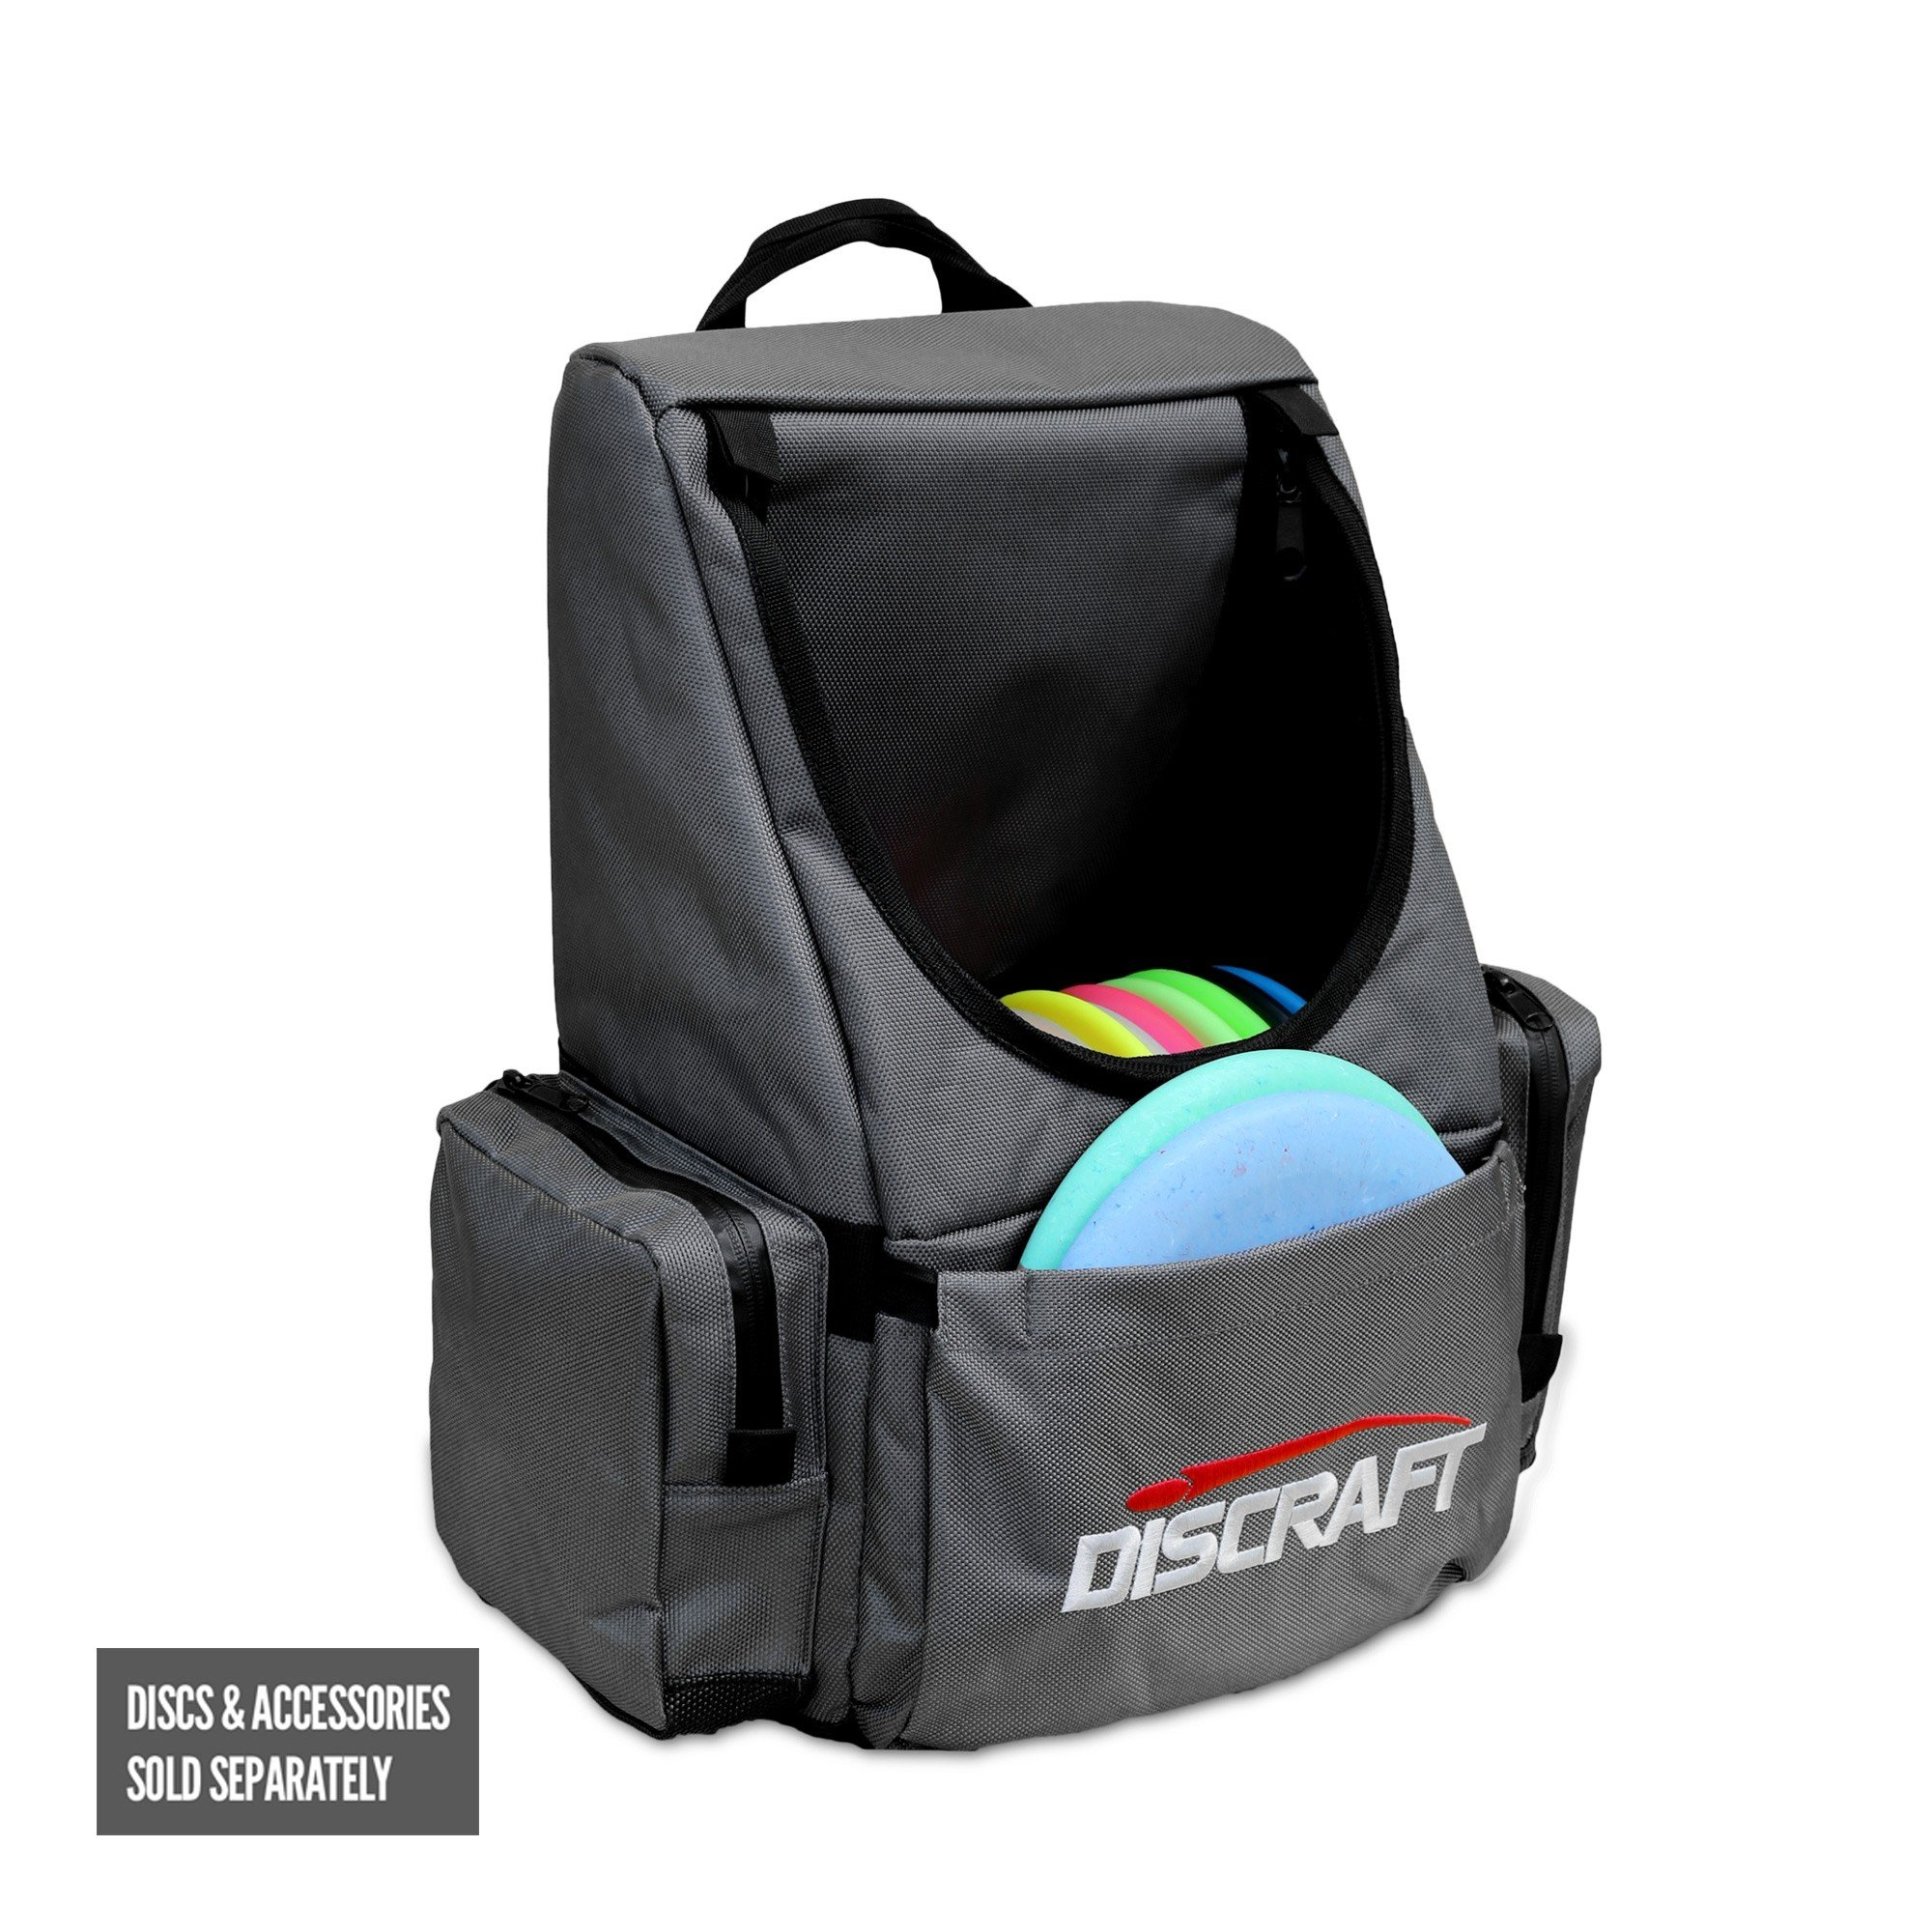 Discraft Disc Golf Bag Backpack Tournament Bag, Gray by Discraft